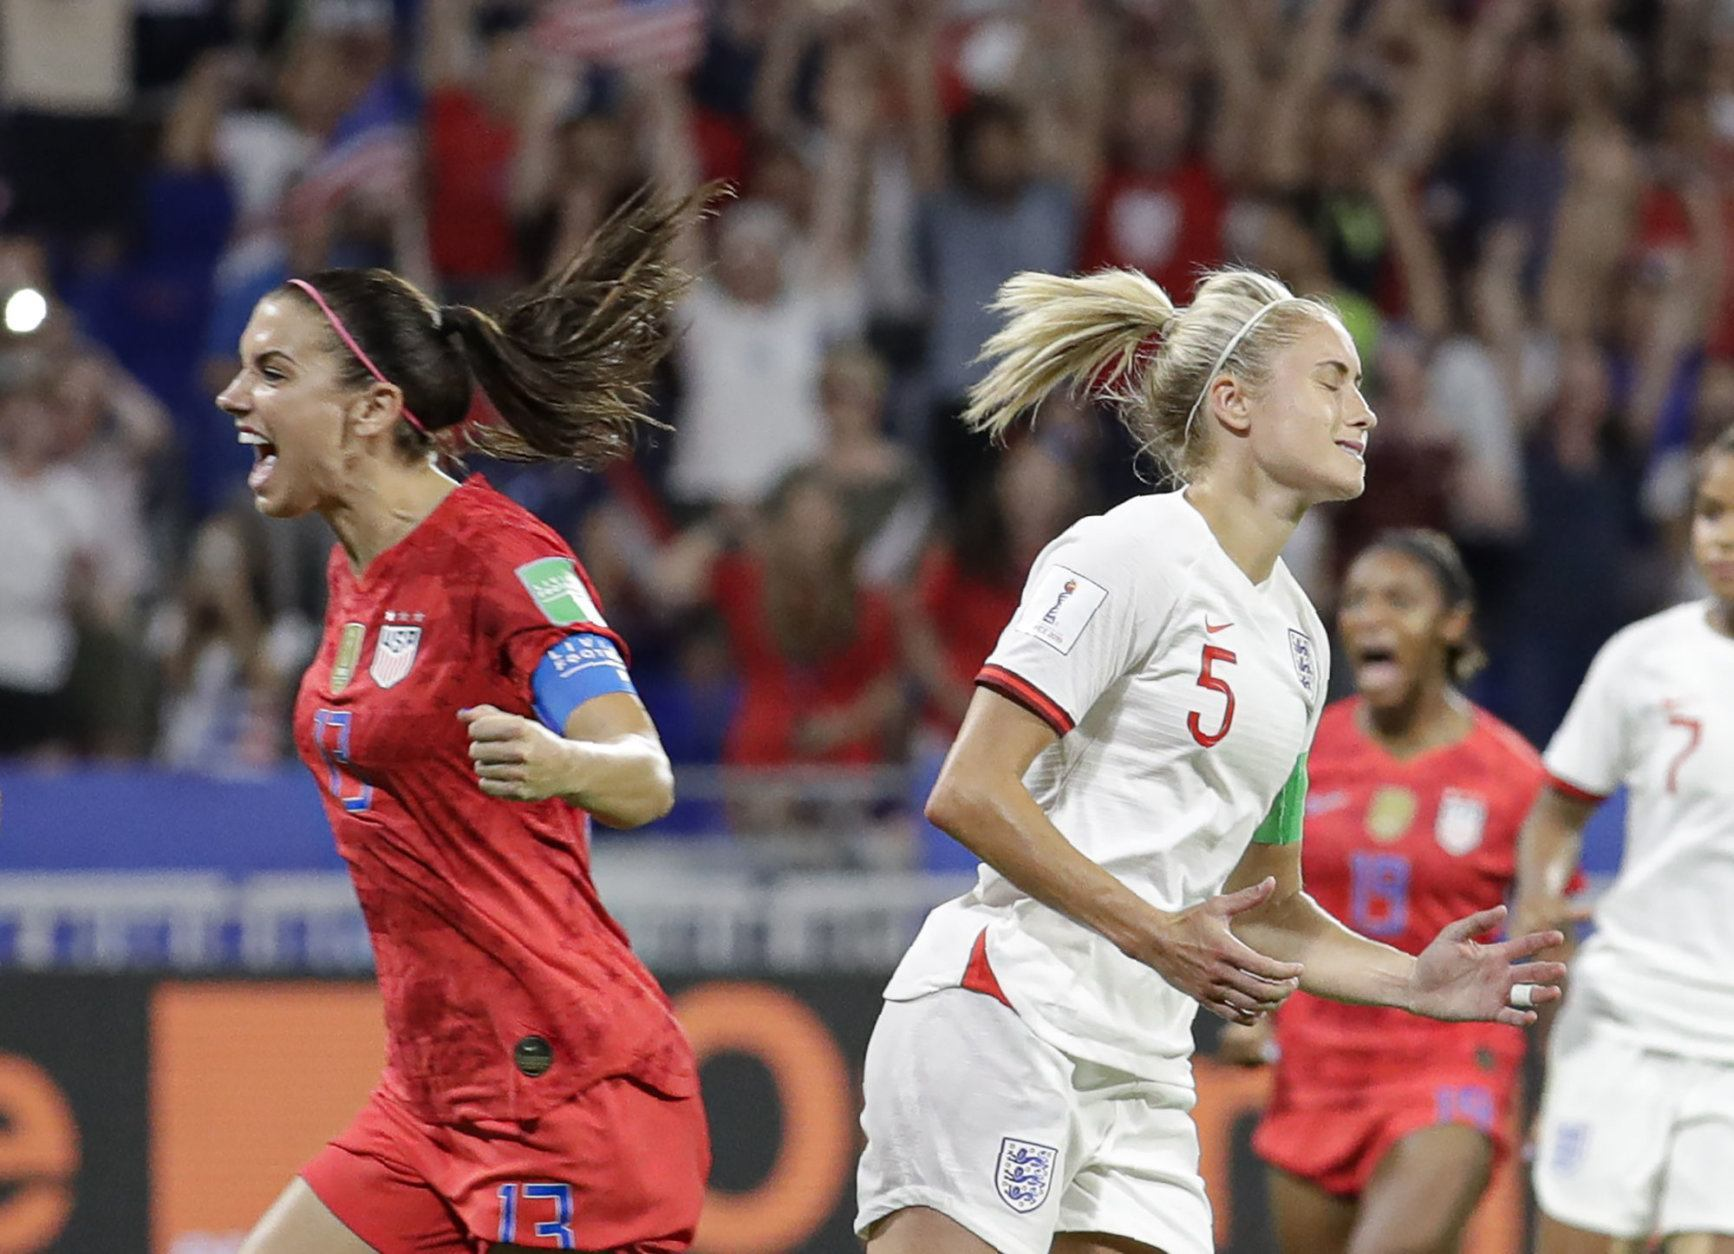 England's Steph Houghton, right, grimaces after failing to score from the penalty spot as United States' Alex Morgan celebrates during the Women's World Cup semifinal soccer match between England and the United States, at the Stade de Lyon, outside Lyon, France, Tuesday, July 2, 2019. (AP Photo/Alessandra Tarantino)